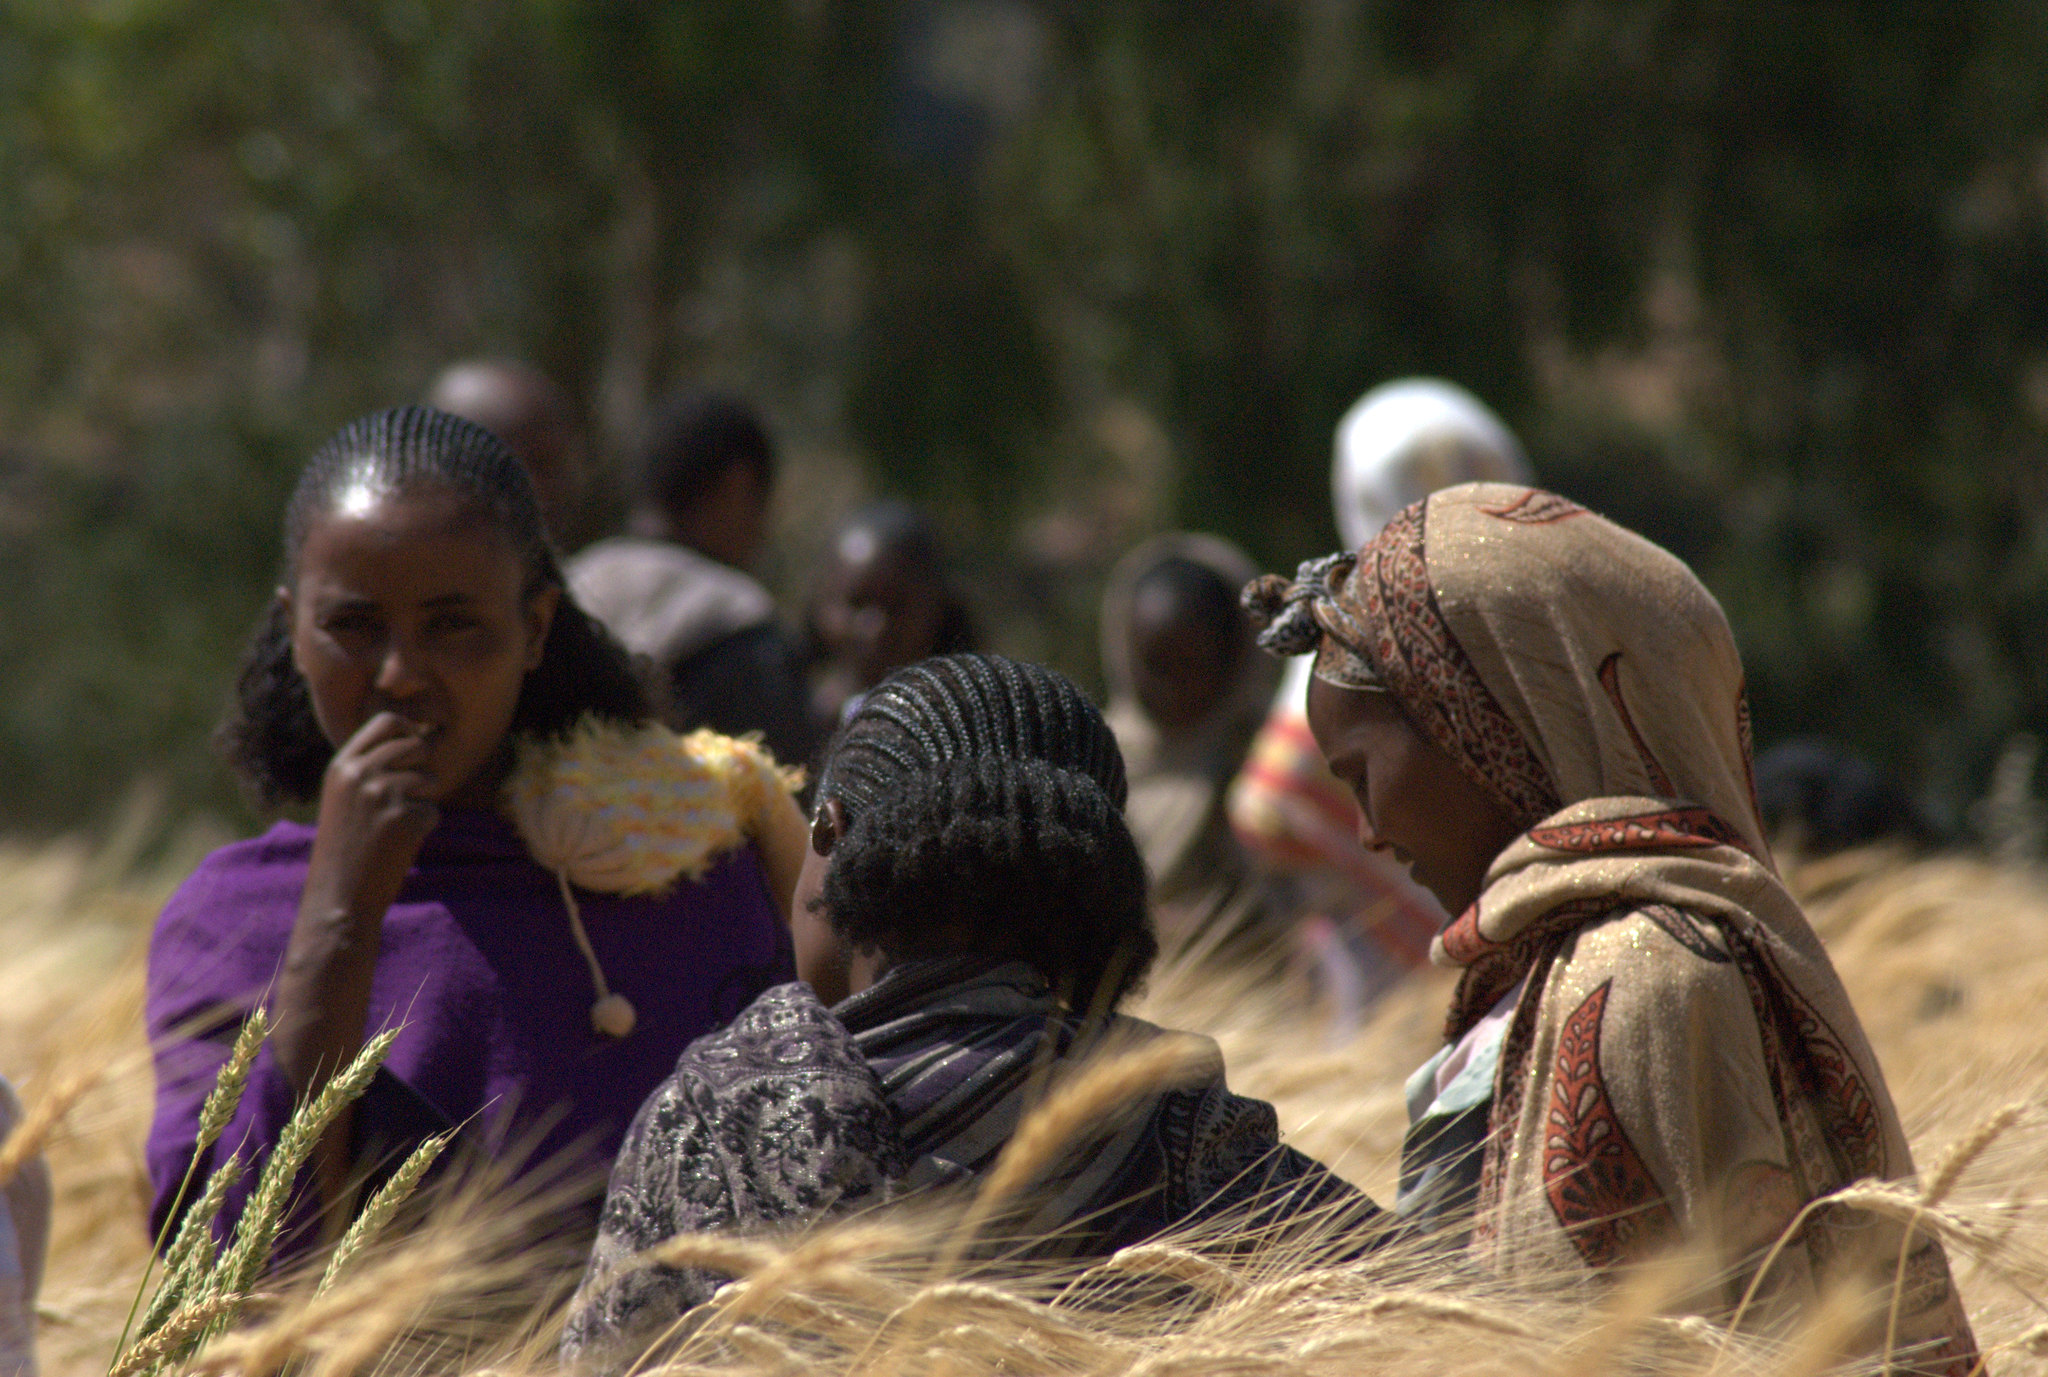 Farmers evaluate traits of wheat varieties, Ethiopia. (Photo: Jeske van de Gevel/Bioversity International)